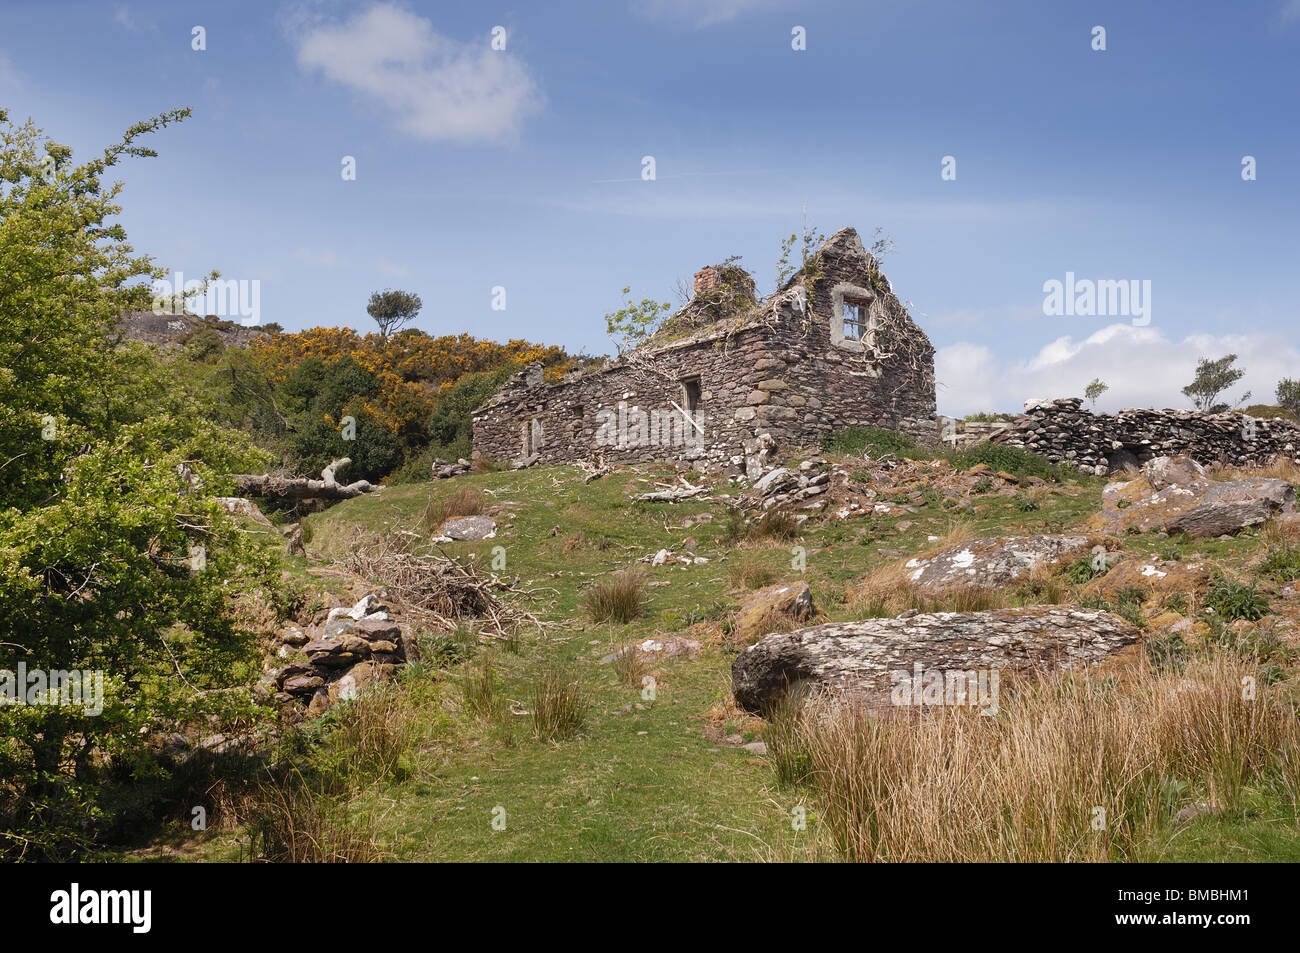 Irish Cottage, Probably Dating from the Famine - John Gollop - Stock Image